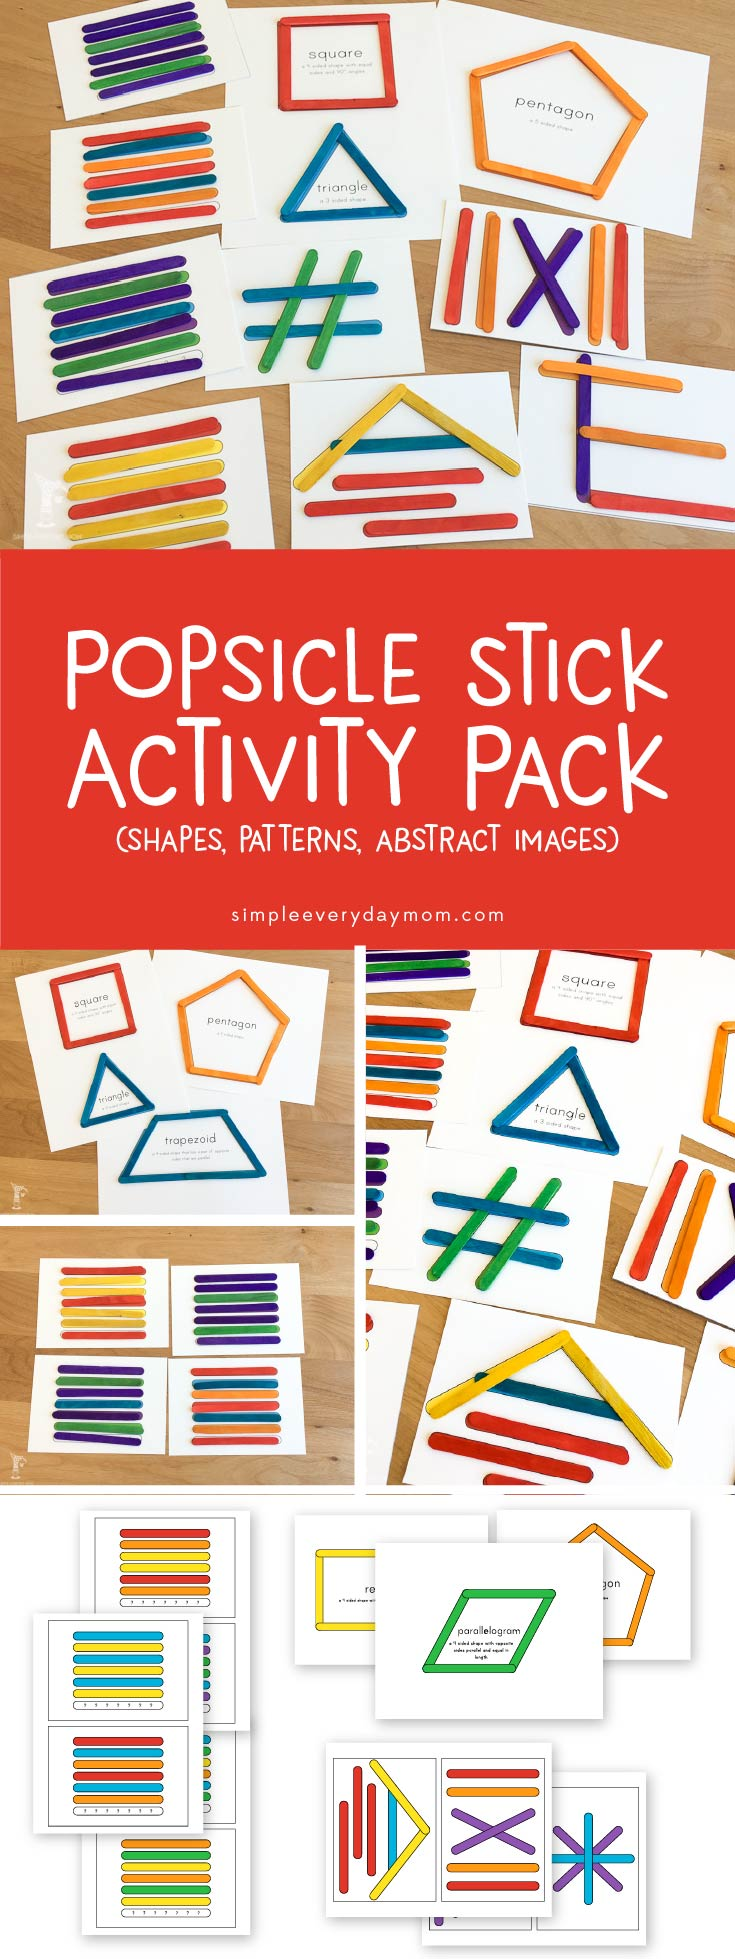 photo about Popsicle Printable named Uncomplicated Prep Popsicle Adhere Initiatives For More youthful Small children